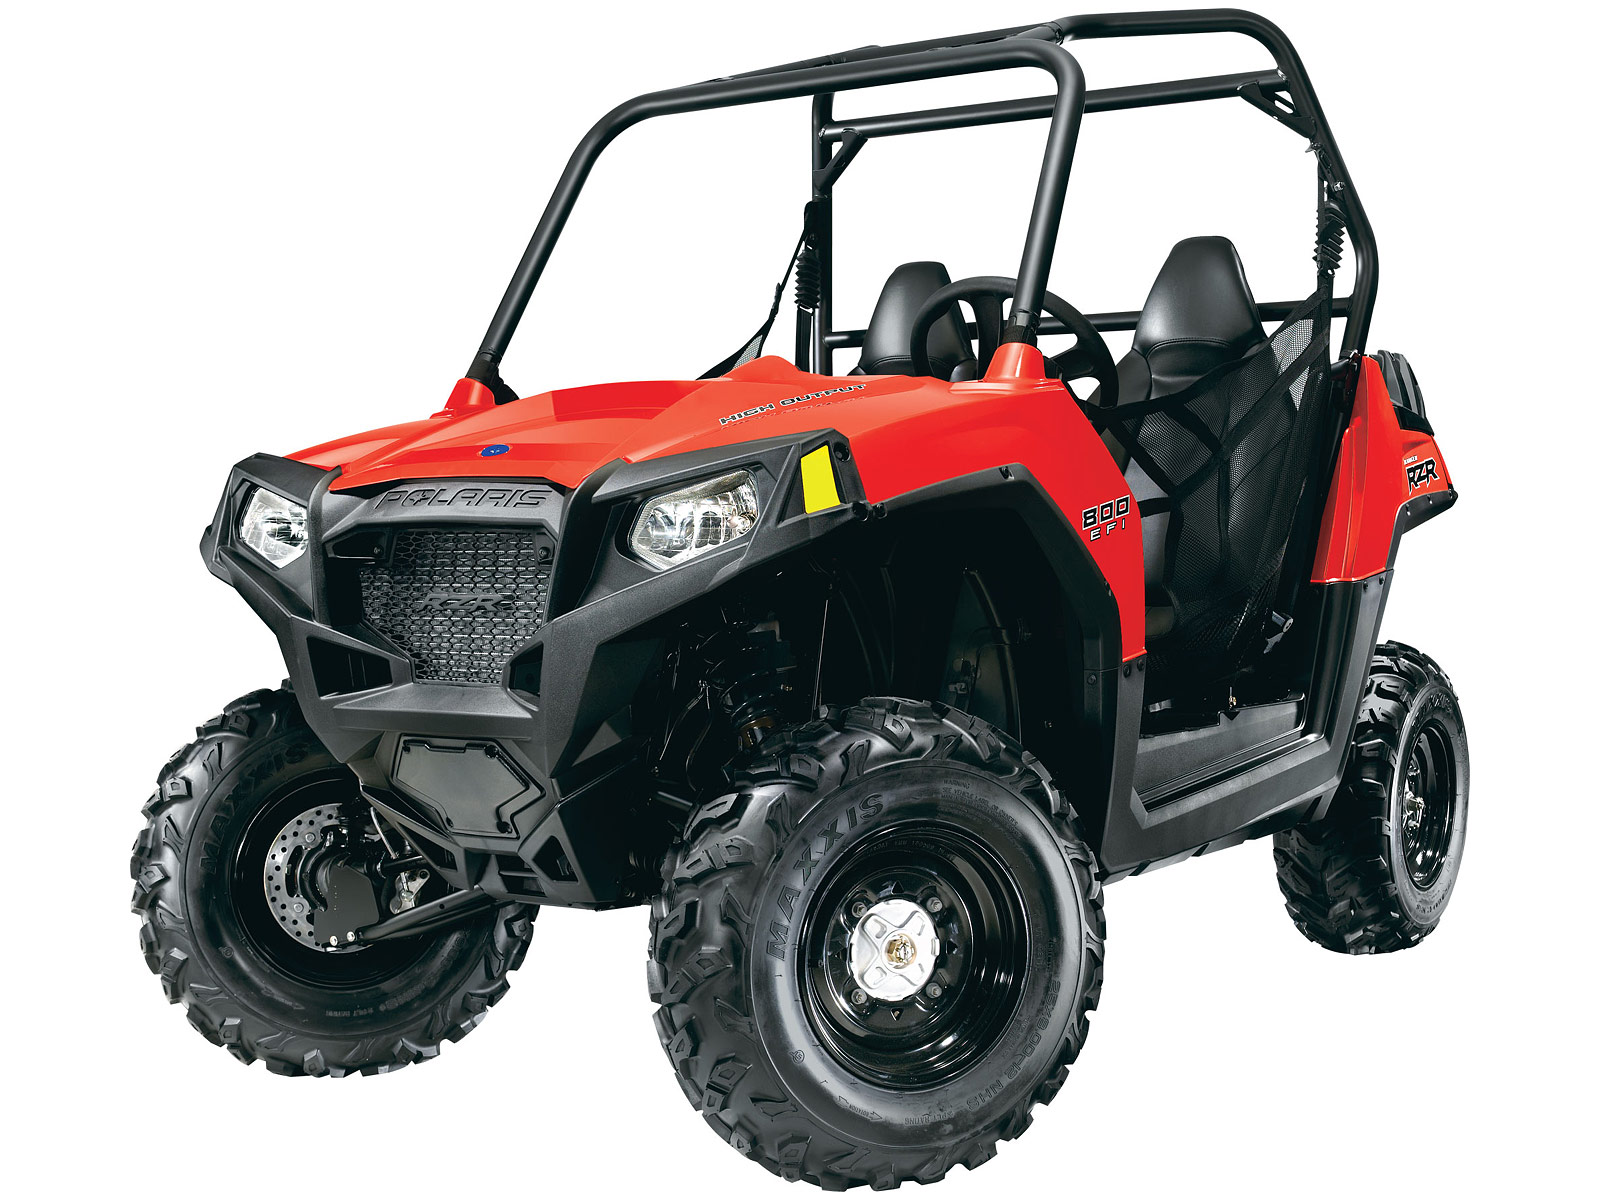 2012 Polaris Ranger RZR 800 ATV pictures 1 ...